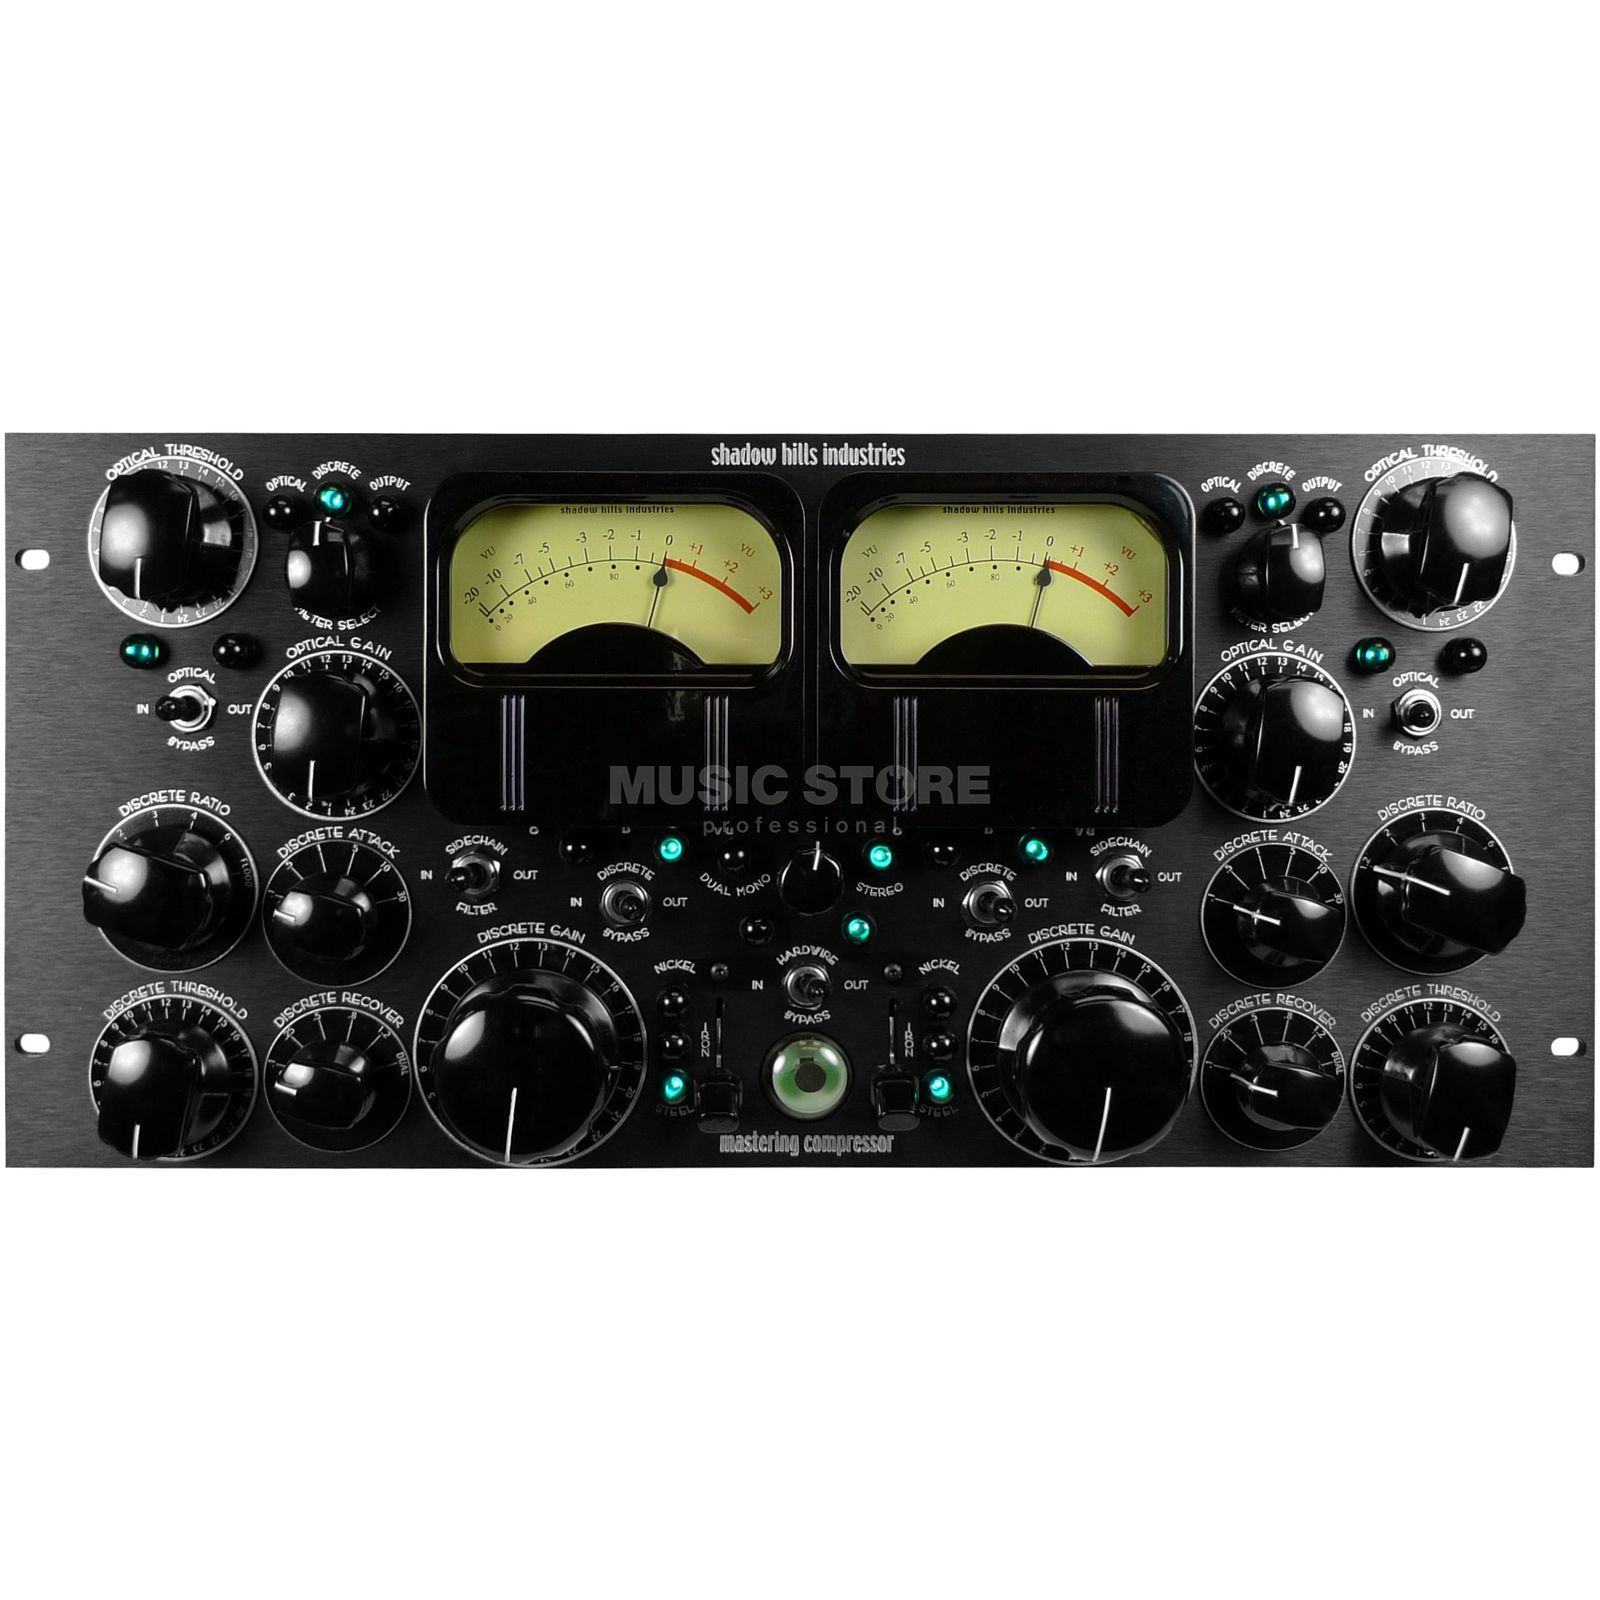 Shadow Hills Industries Mastering Compressor Electro Optical Compressor Produktbillede